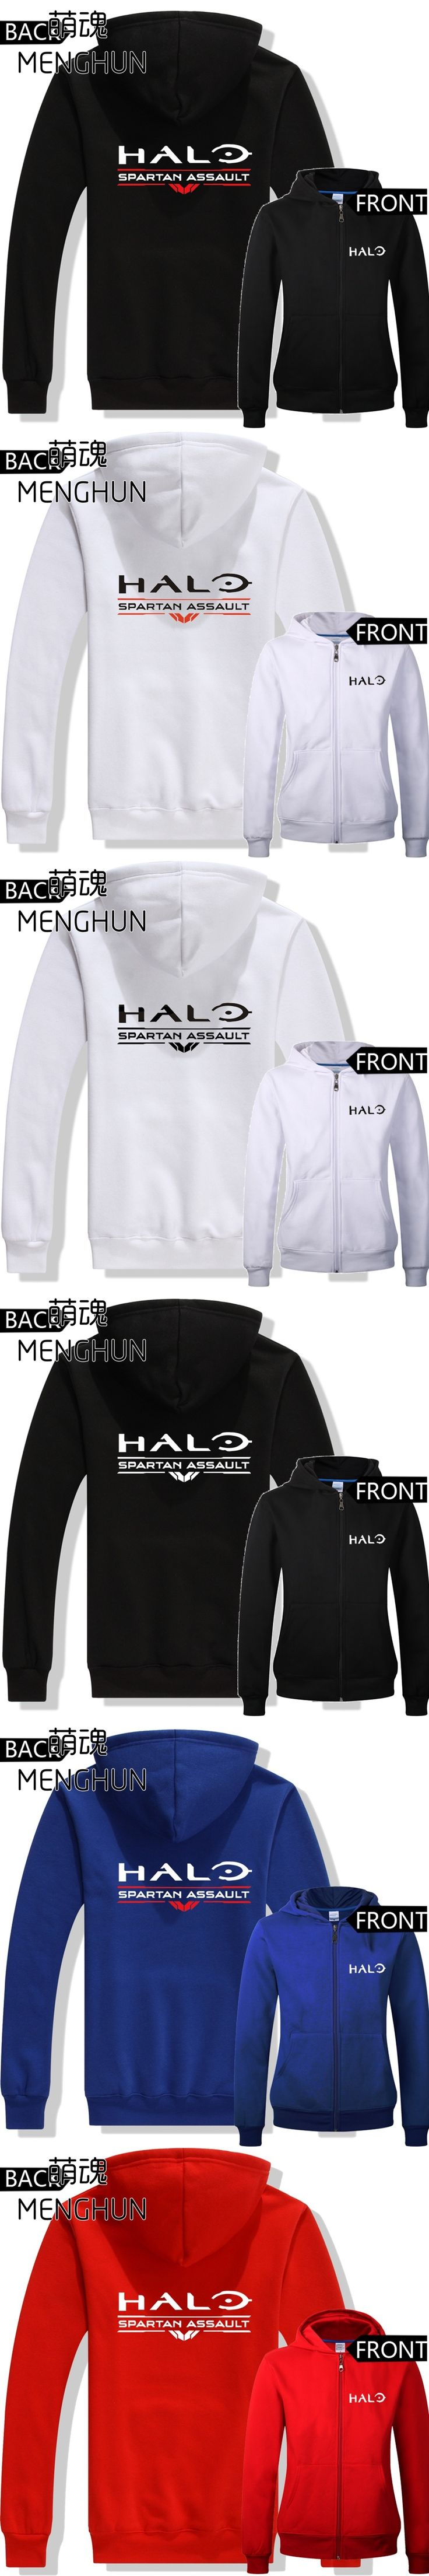 Cool game fans daily wear Autumn winter hoodies Game HALO spartan assault new game fans printing hoodies men's costume ac591